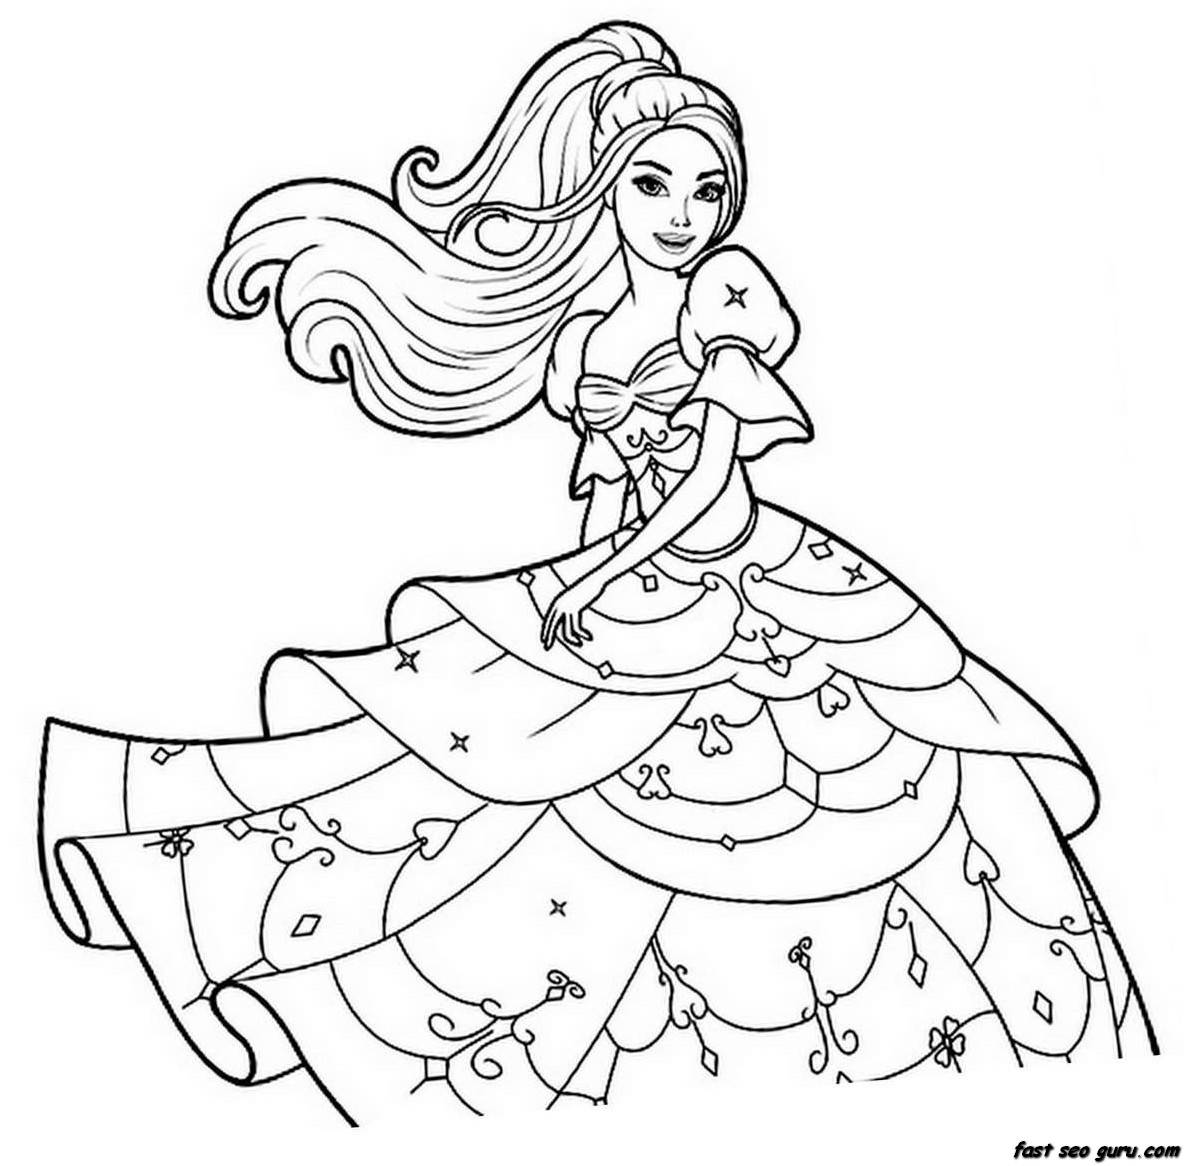 free girl coloring pages coloring pages for girls best coloring pages for kids pages coloring free girl